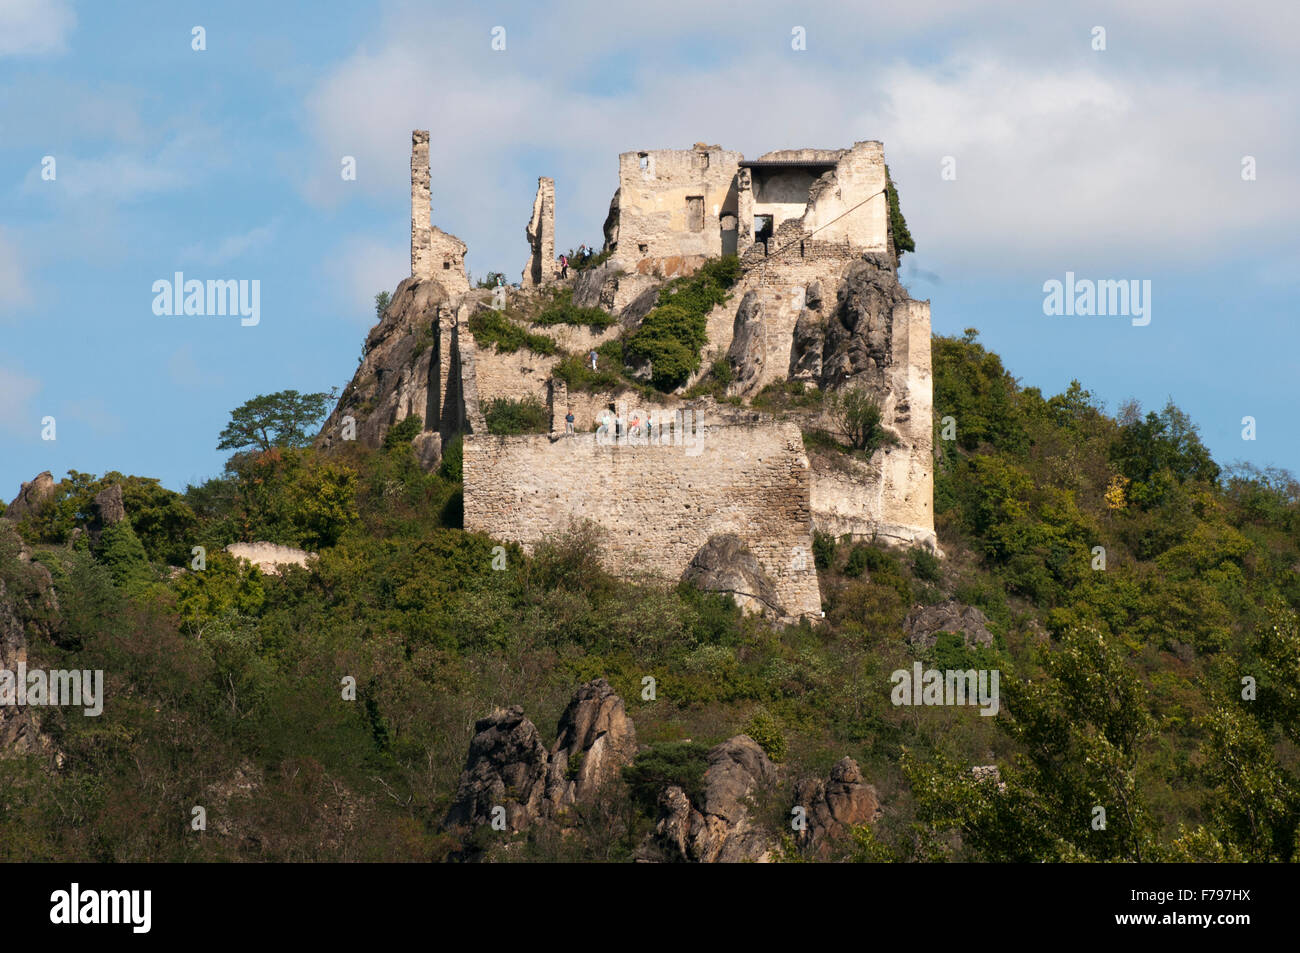 Ruined castle at Duernstein (Durnstein) on the Danube, Wachau Valley, Austria - Stock Image